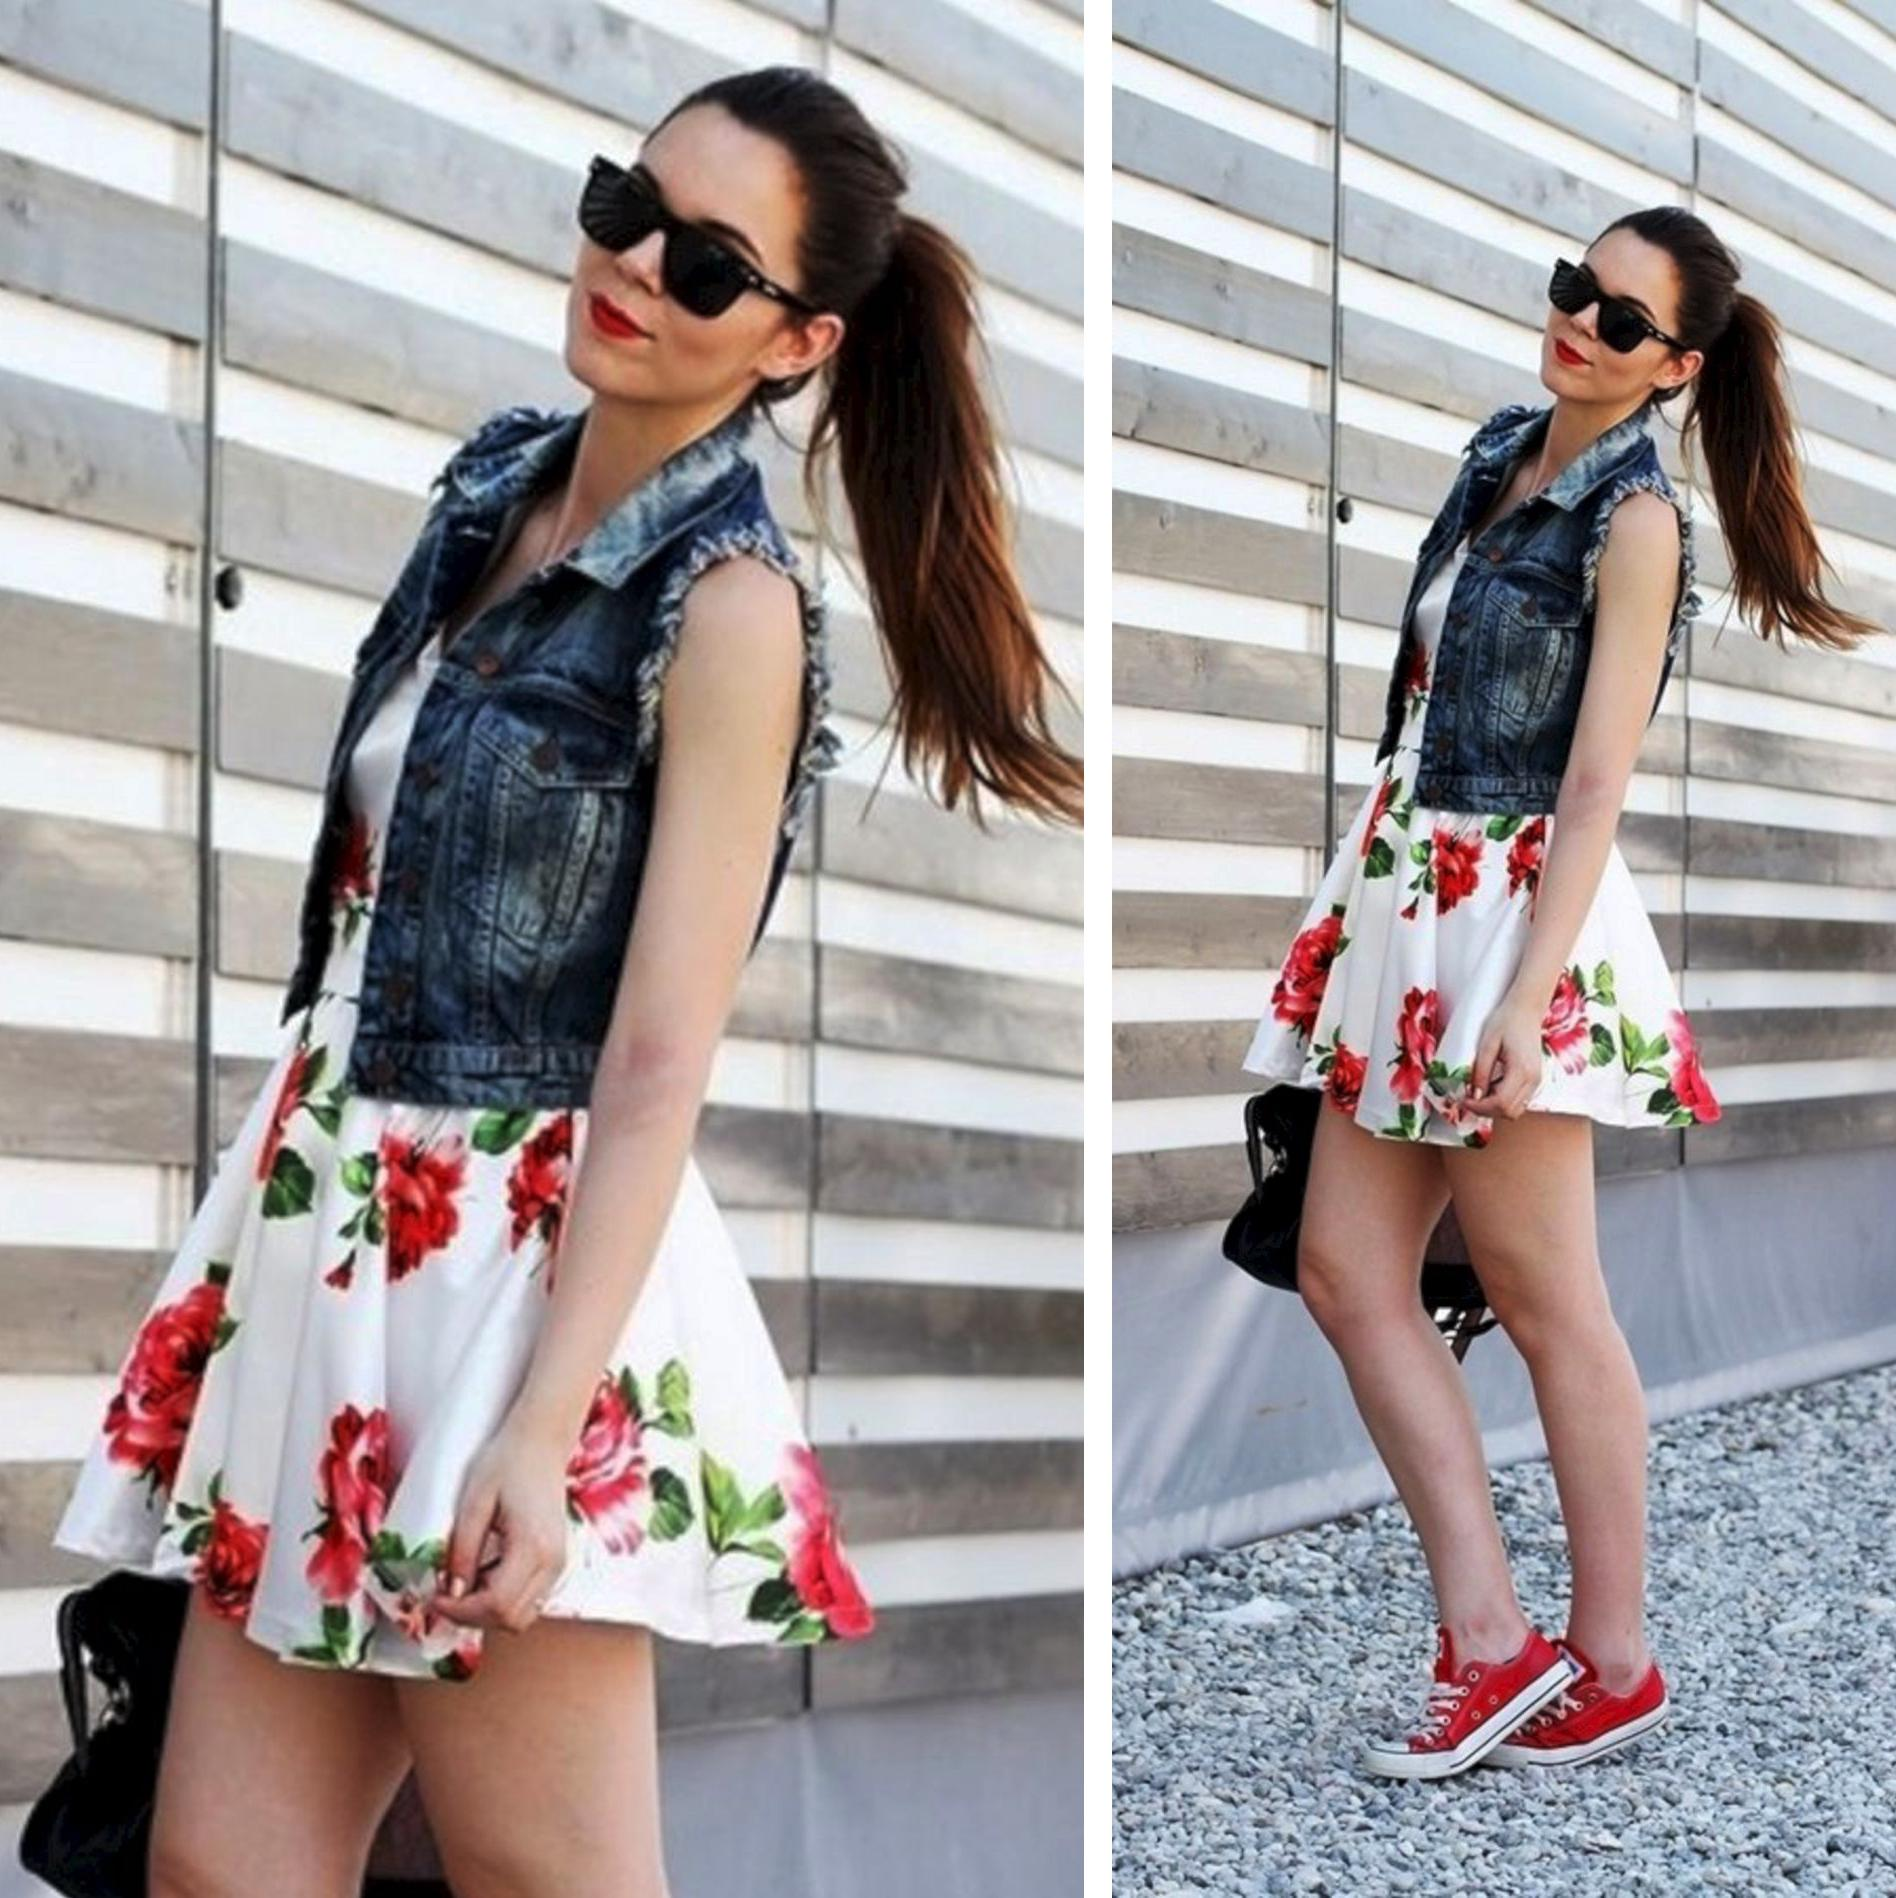 30 Best Polyvore Outfits Summer 30 Images on Stylevore